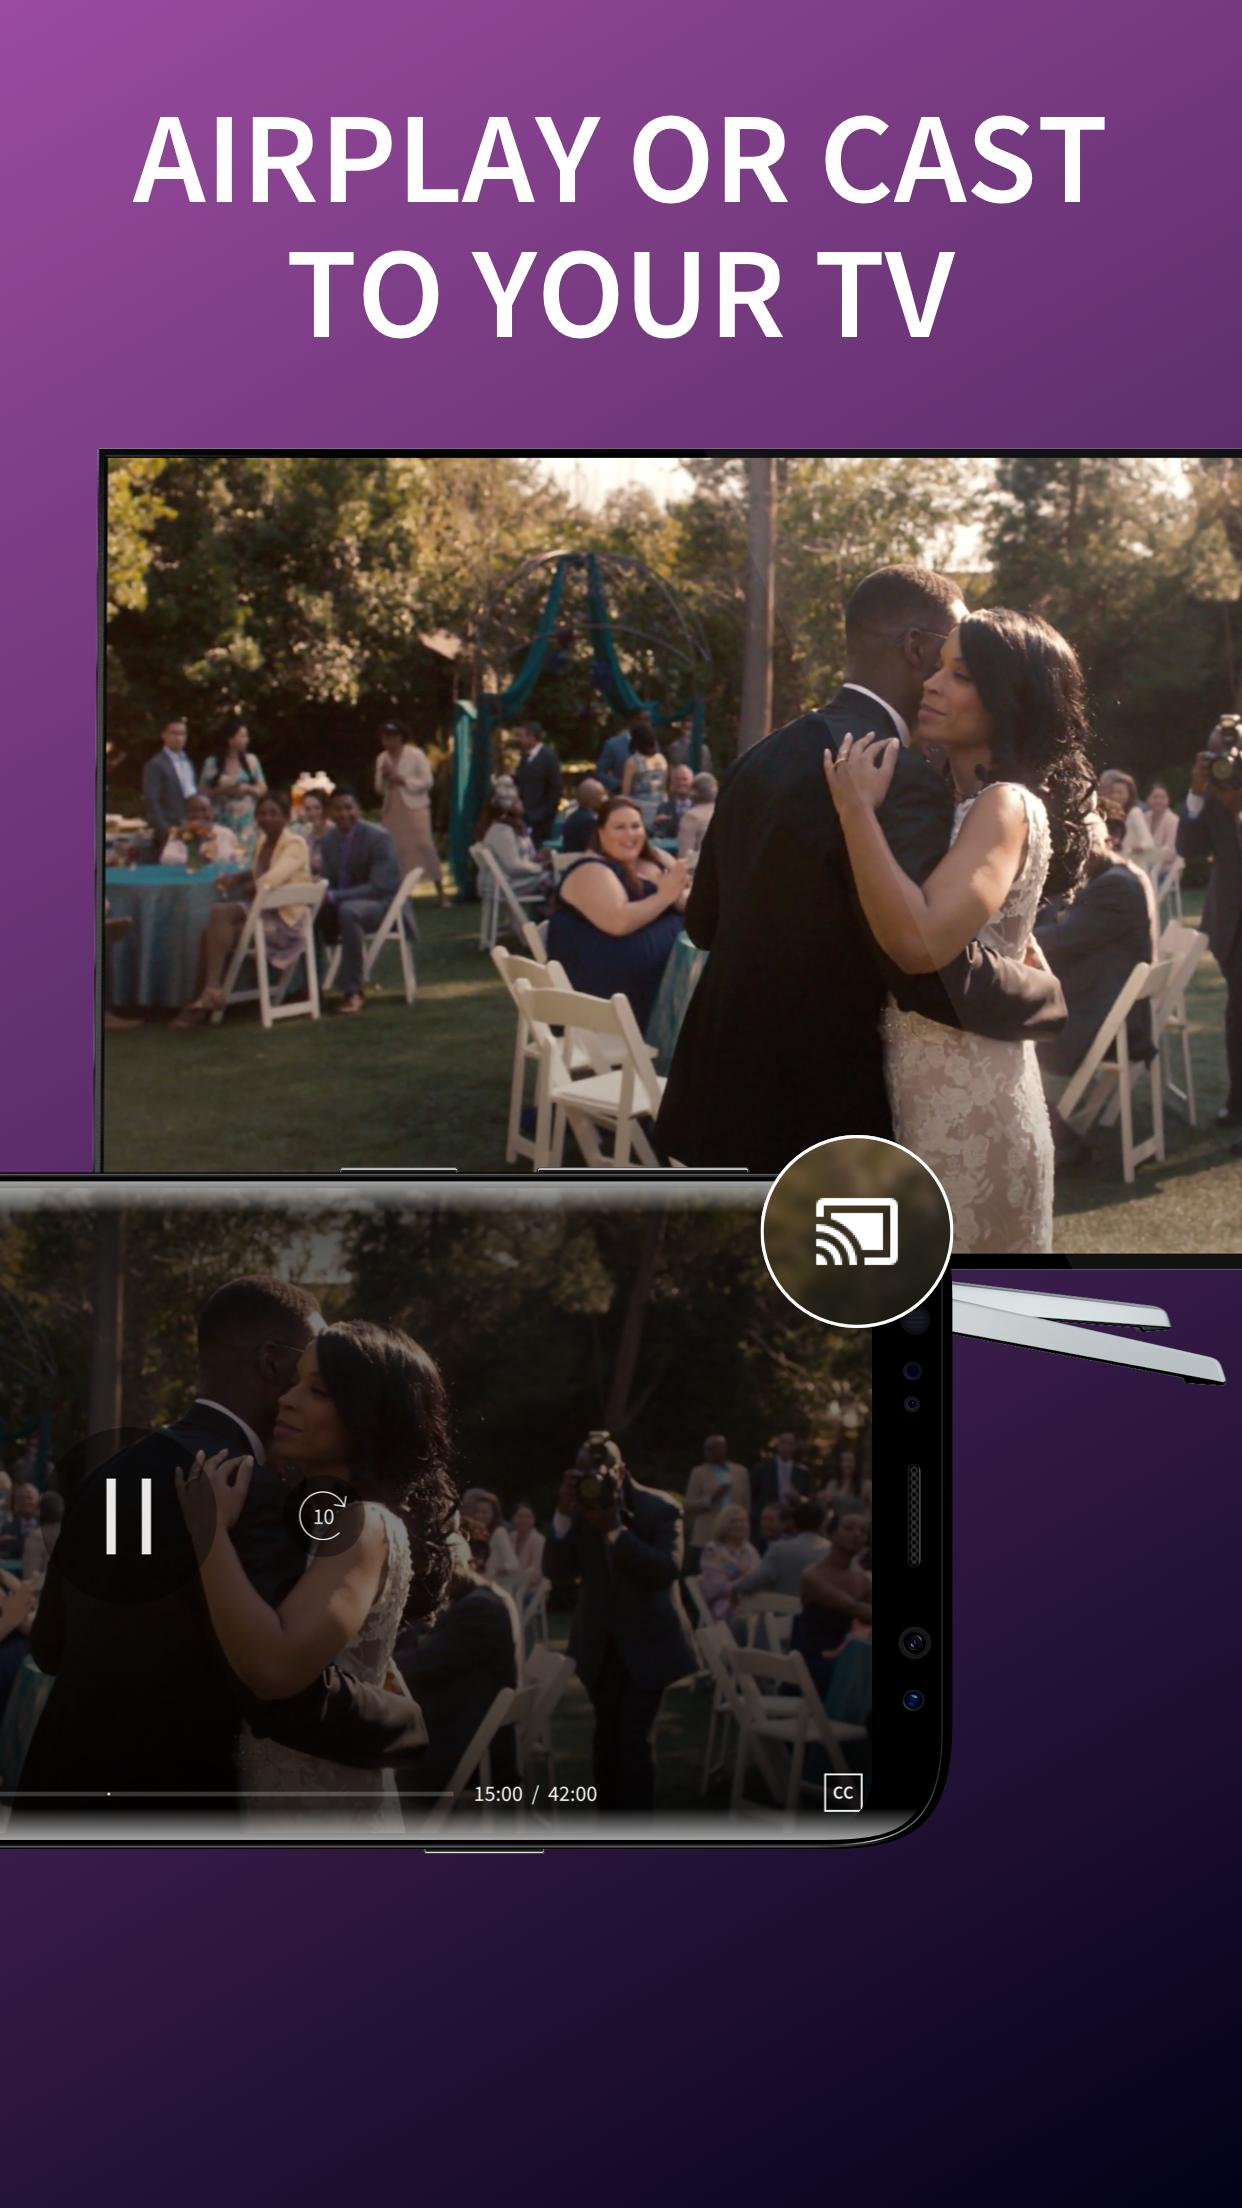 The NBC App - Stream Live TV and Episodes for Free 7.4.1 Screenshot 5